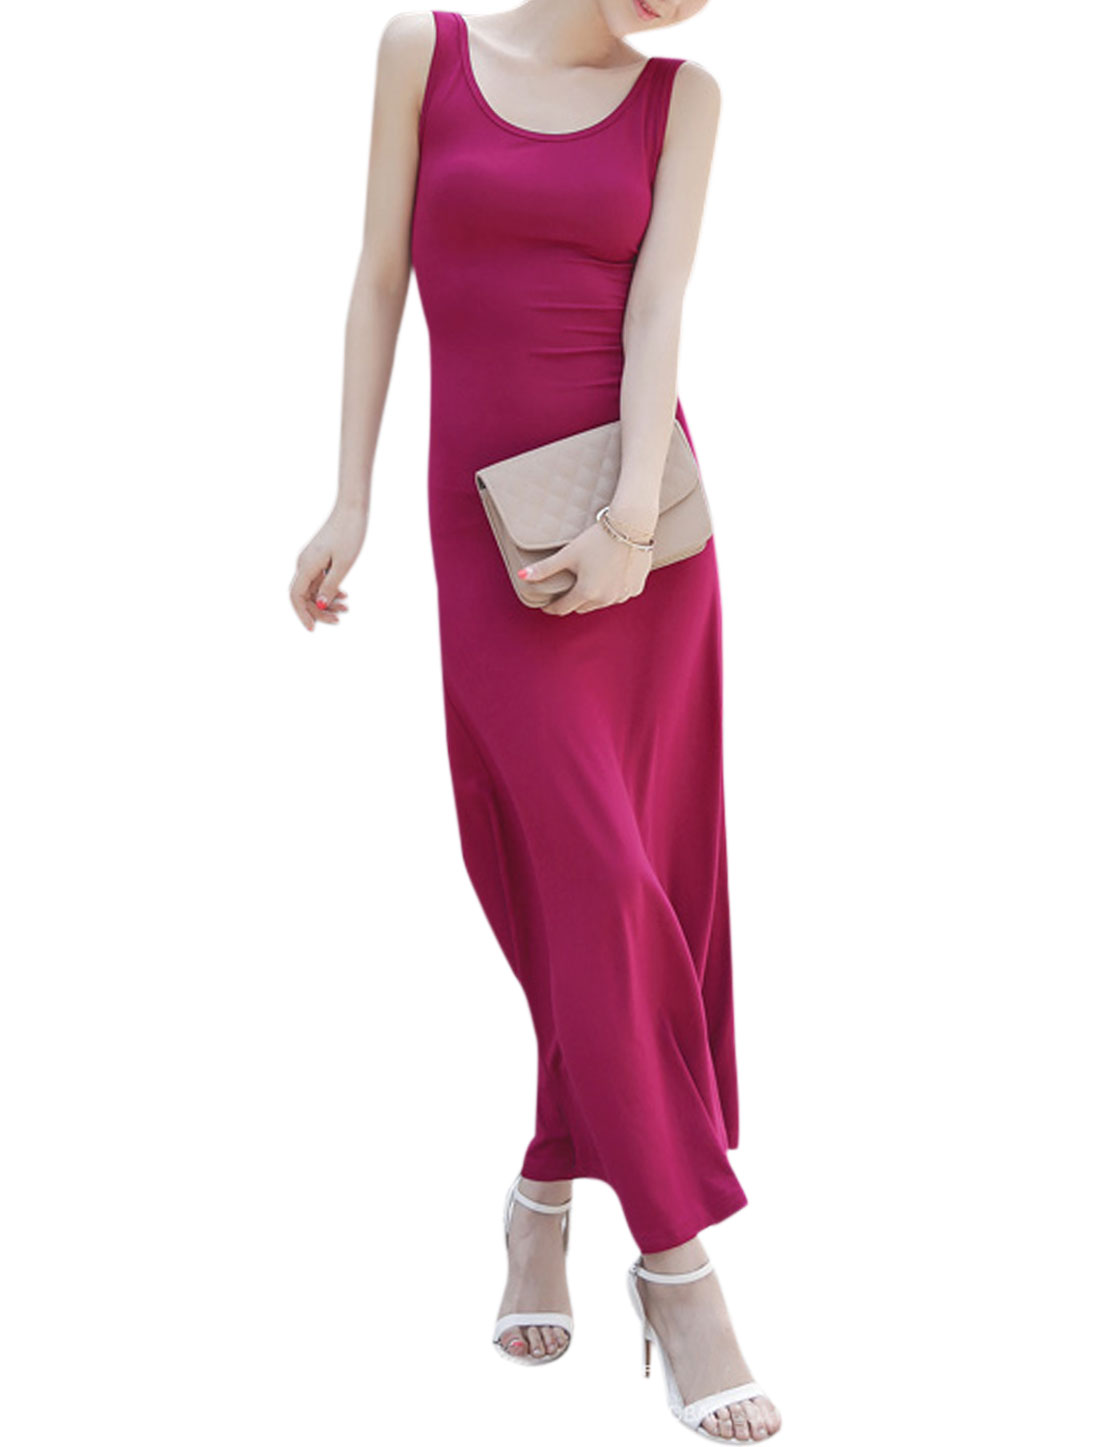 Woman Scoop Neck Backless Self Tie Bowknot Back Sleeveless Maxi Dress Fuchsia S